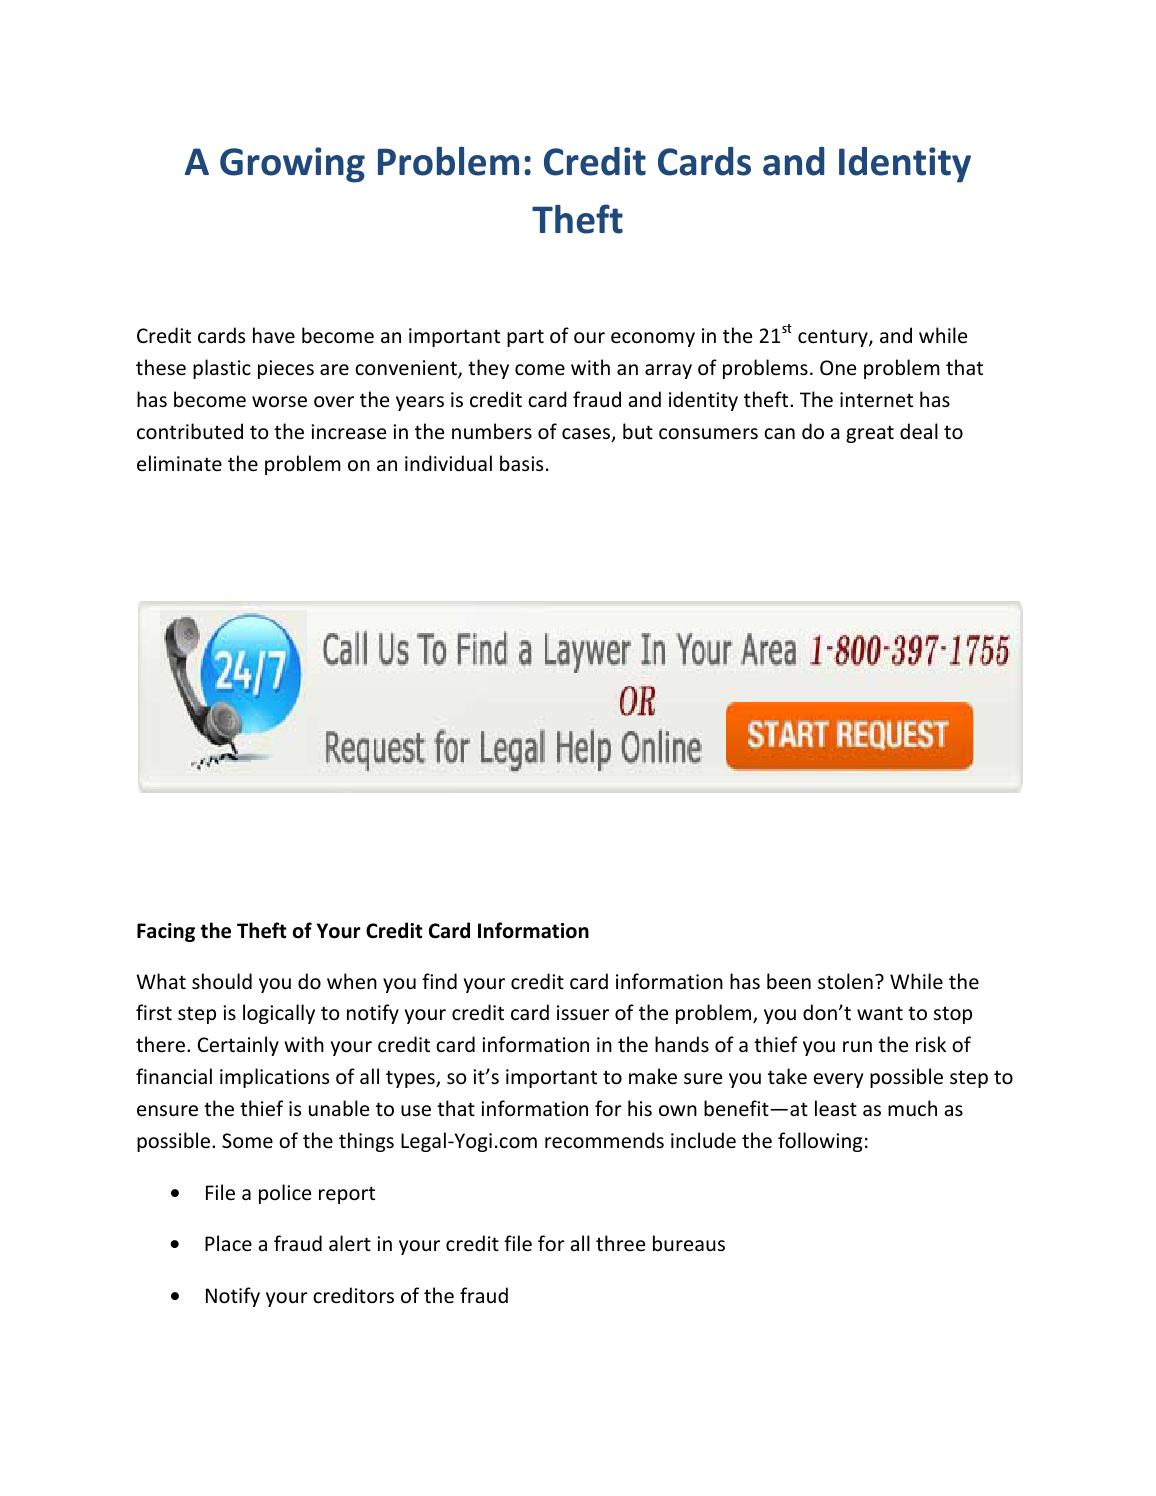 A Growing Problem Credit Cards And Identity Theft By Jesmin Poll Issuu